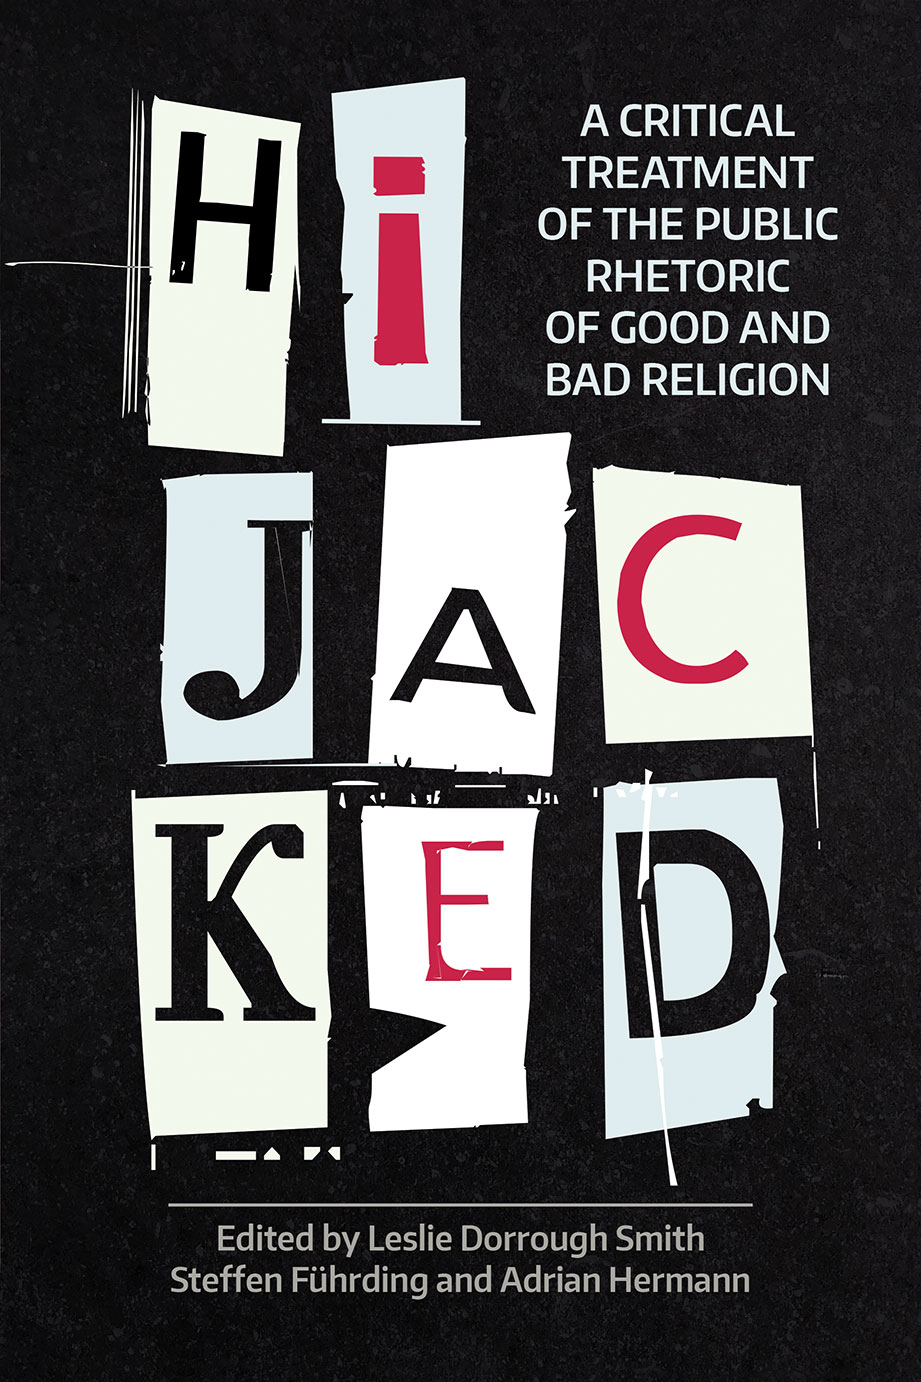 Hijacked - A Critical Treatment of the Public Rhetoric of Good and Bad Religion - Leslie Dorrough Smith